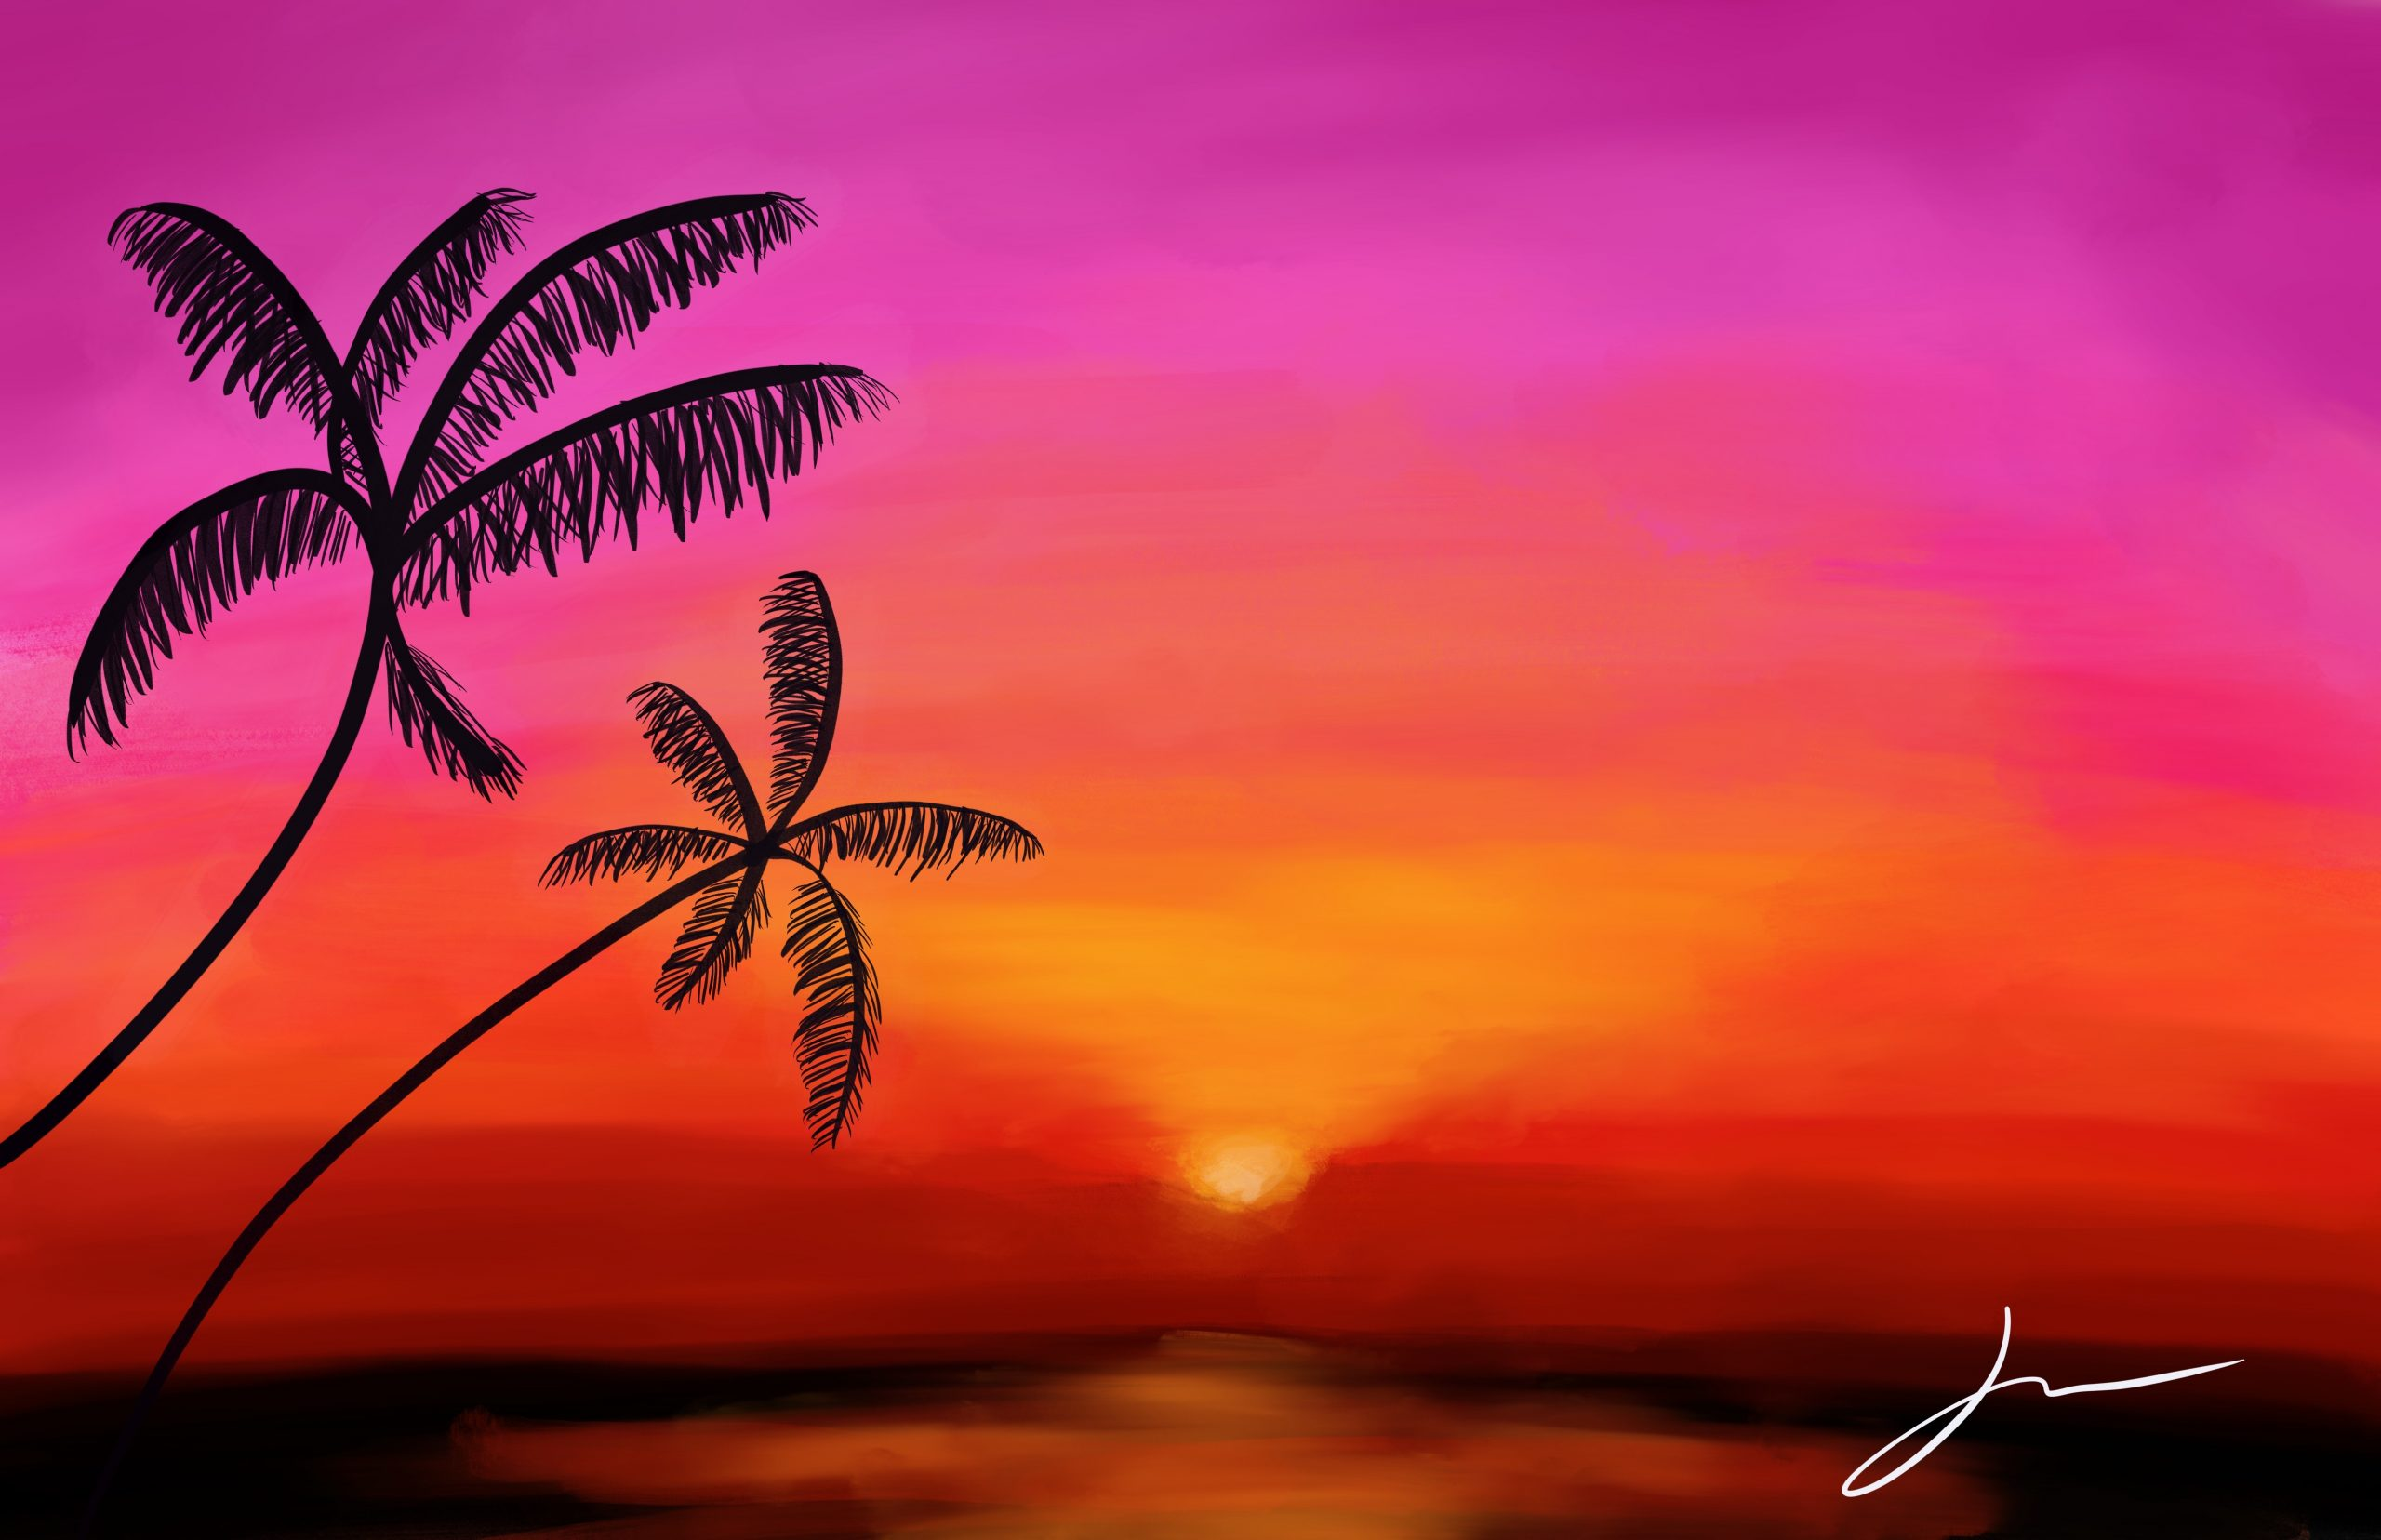 Tropical Sunset Digital Illustration